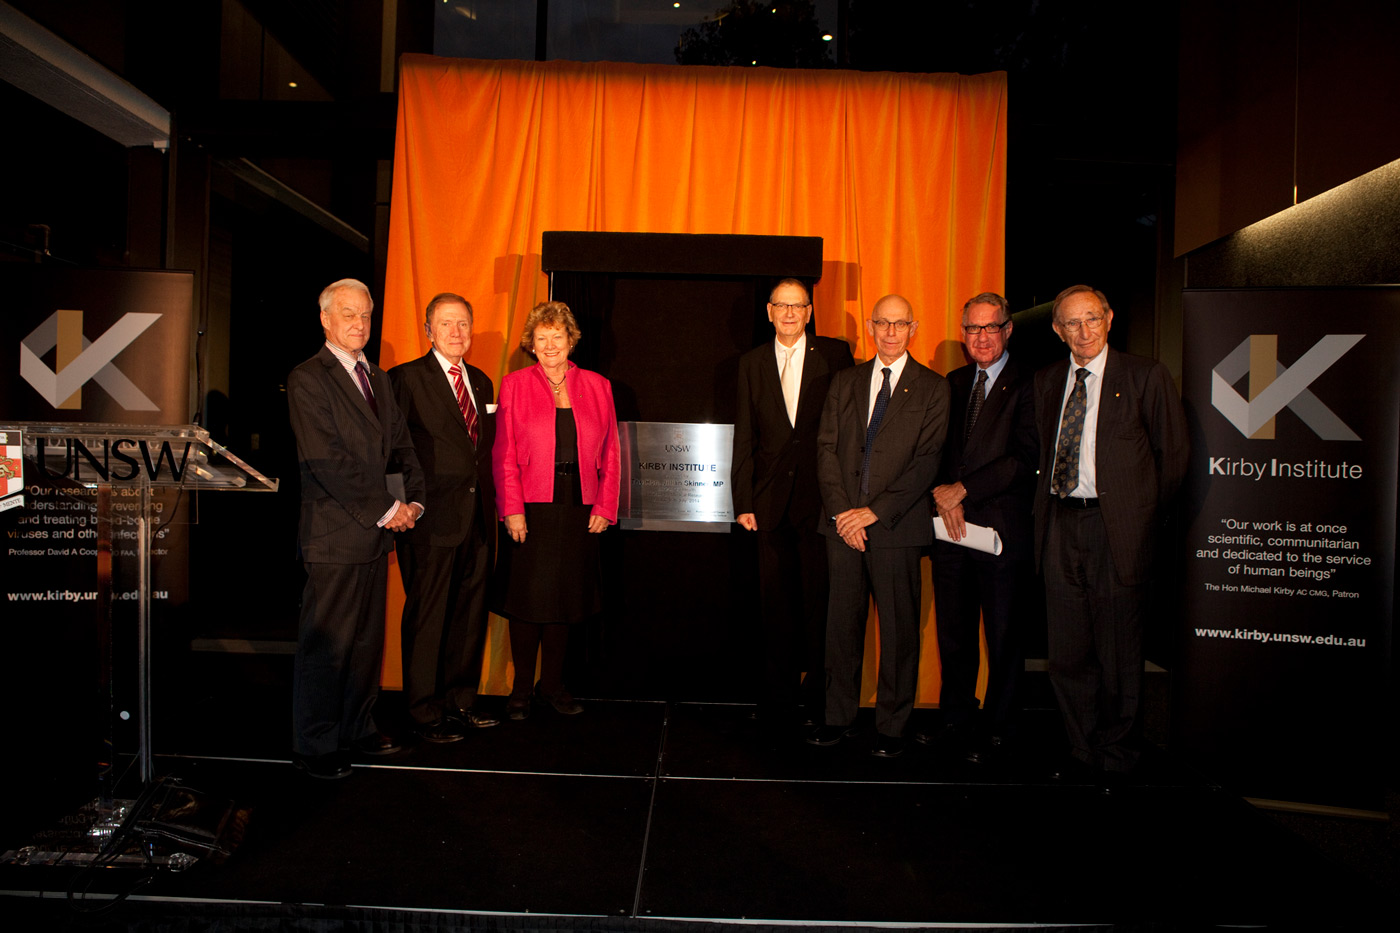 Kirby-Institute-UNSW-Opening-2013_1400.jpg